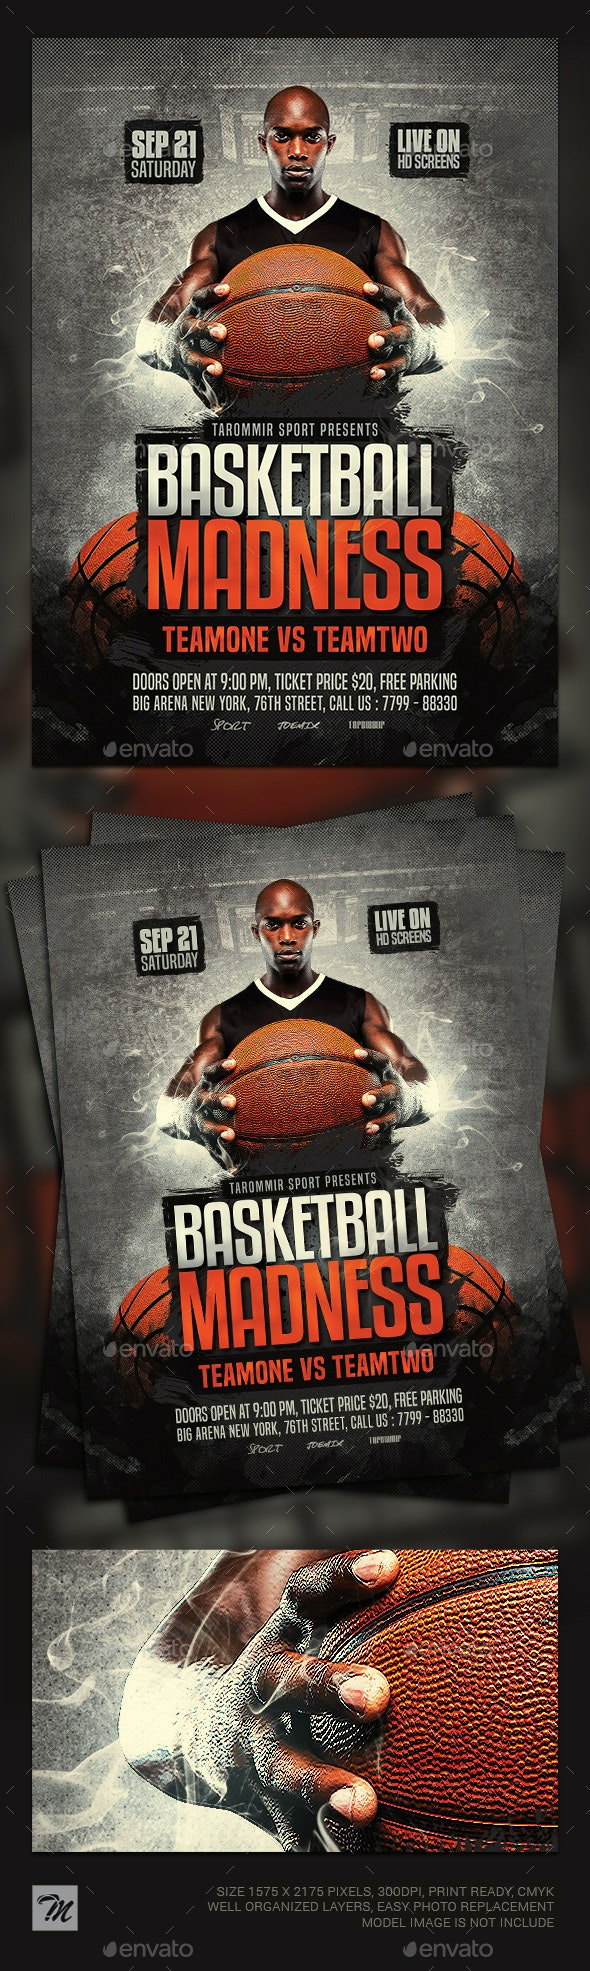 Basketball Madness Flyer - Sports Events